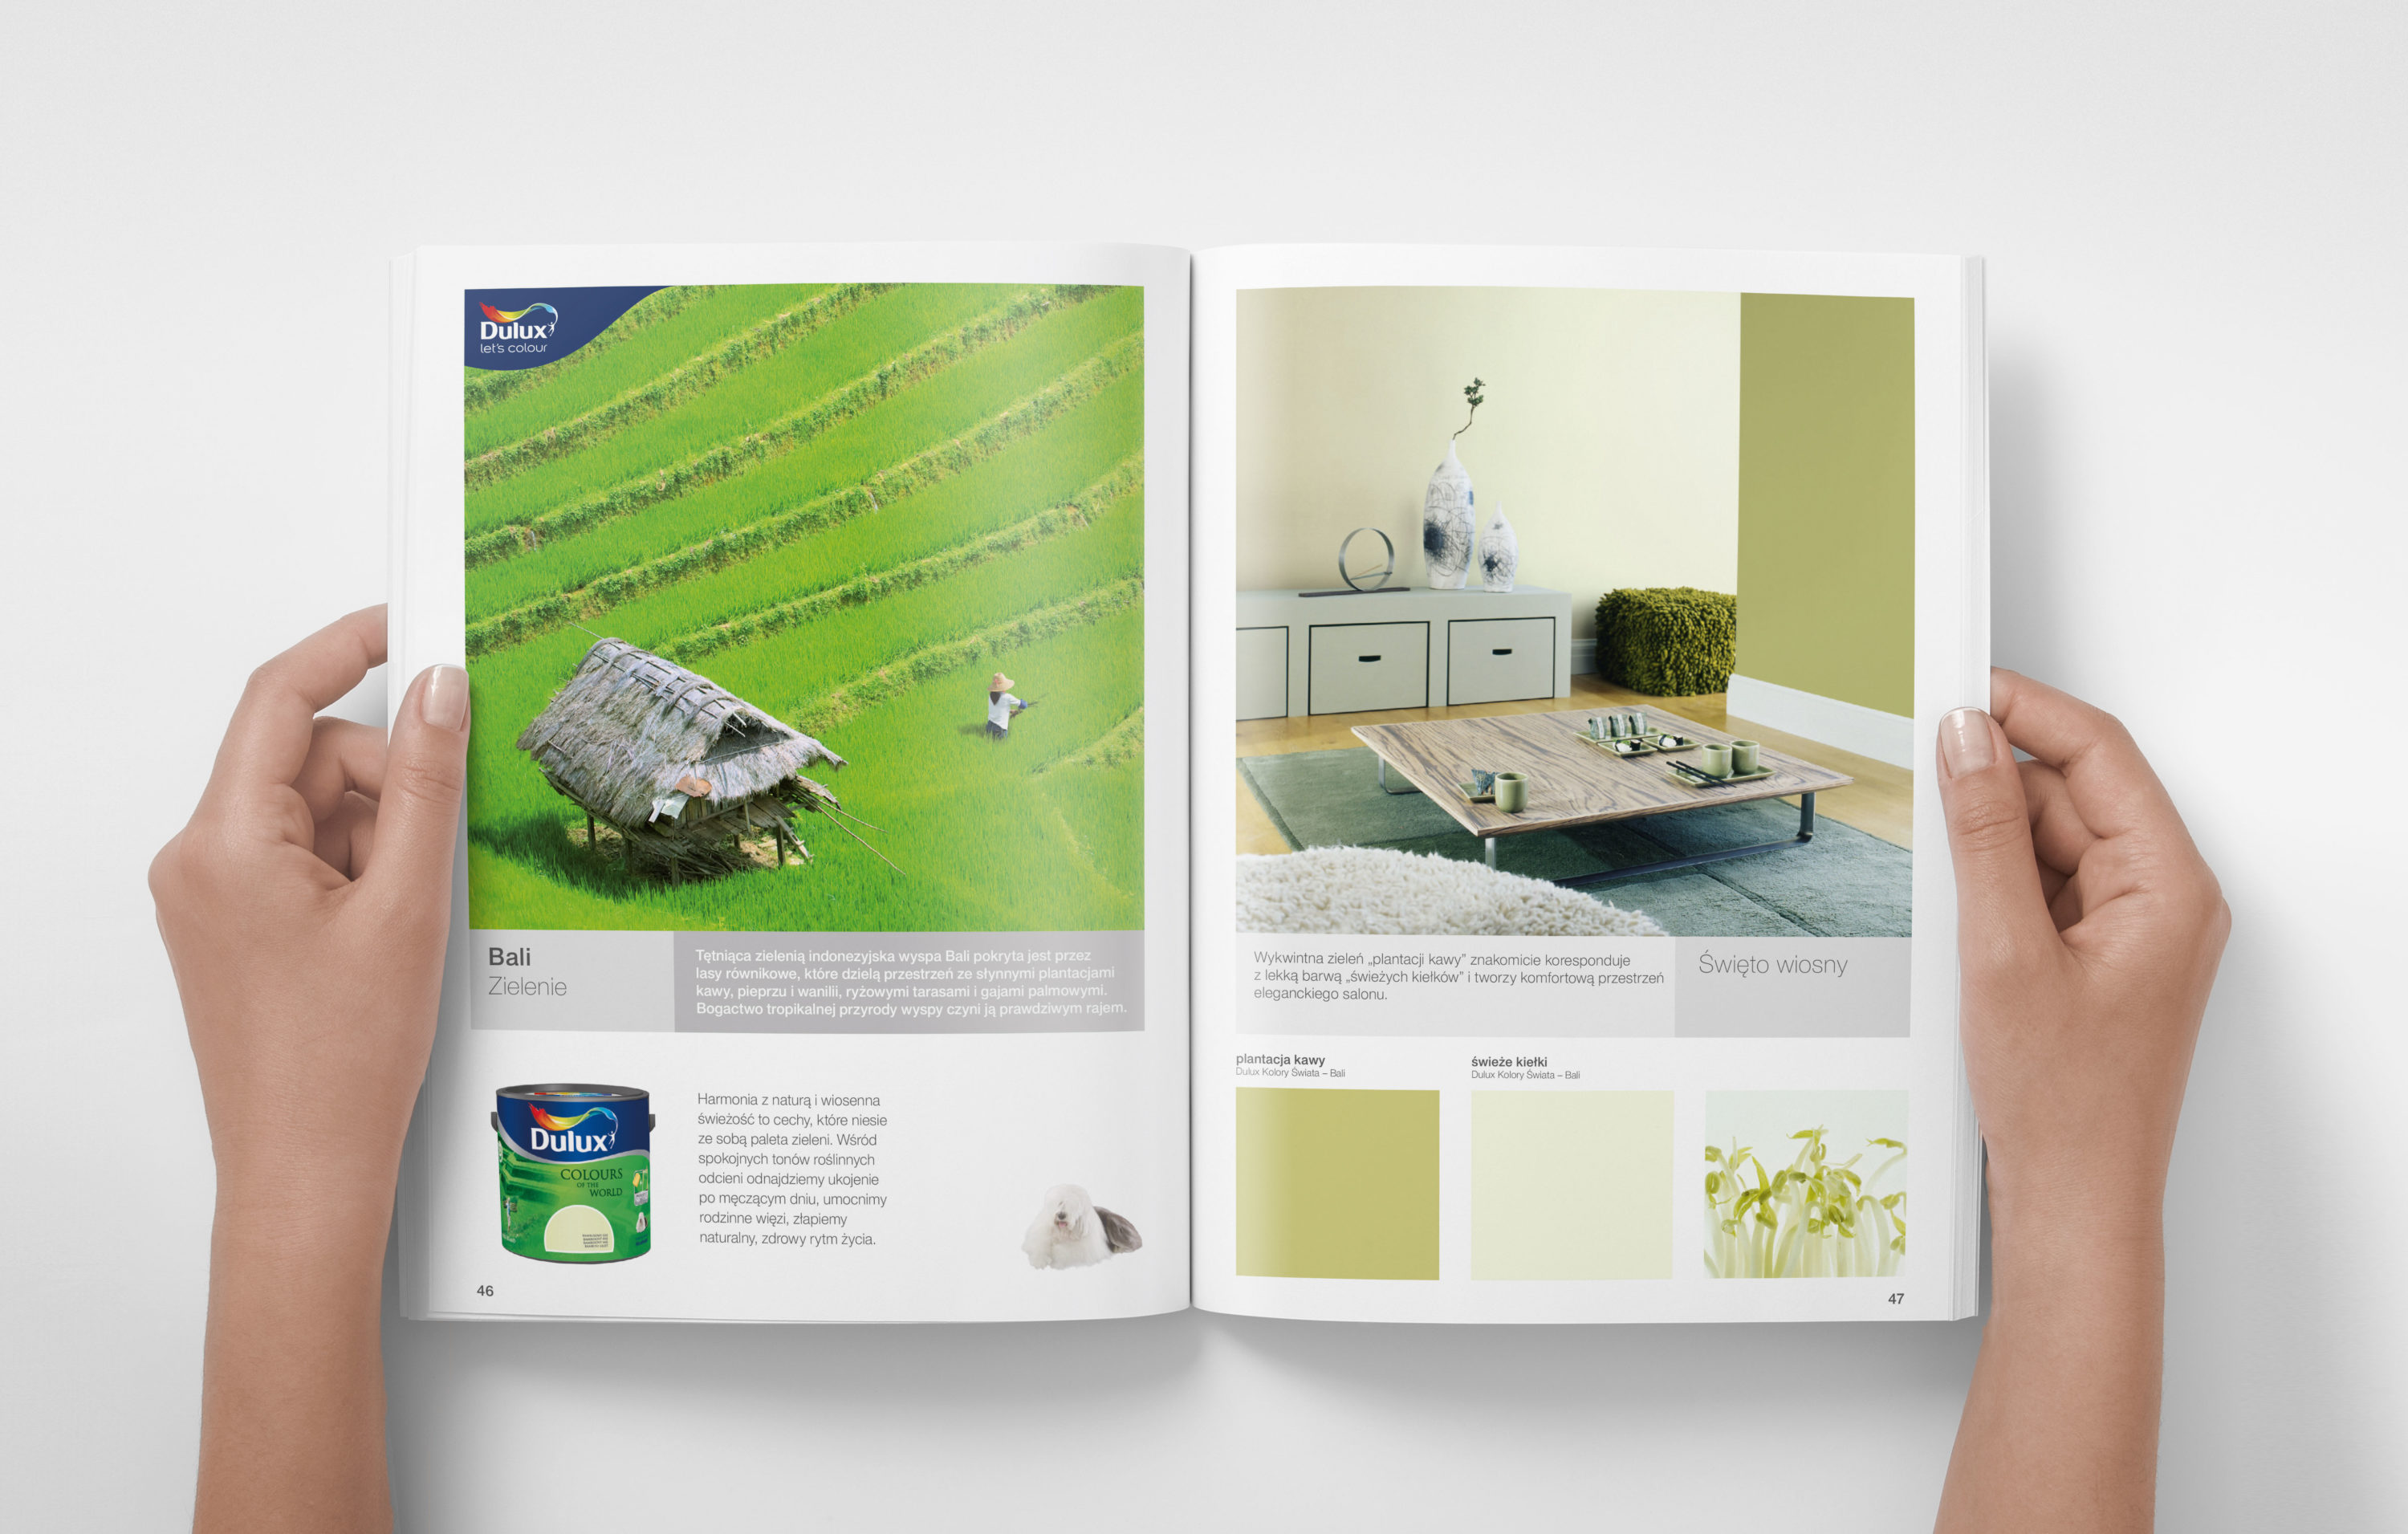 dulux_2012_hold